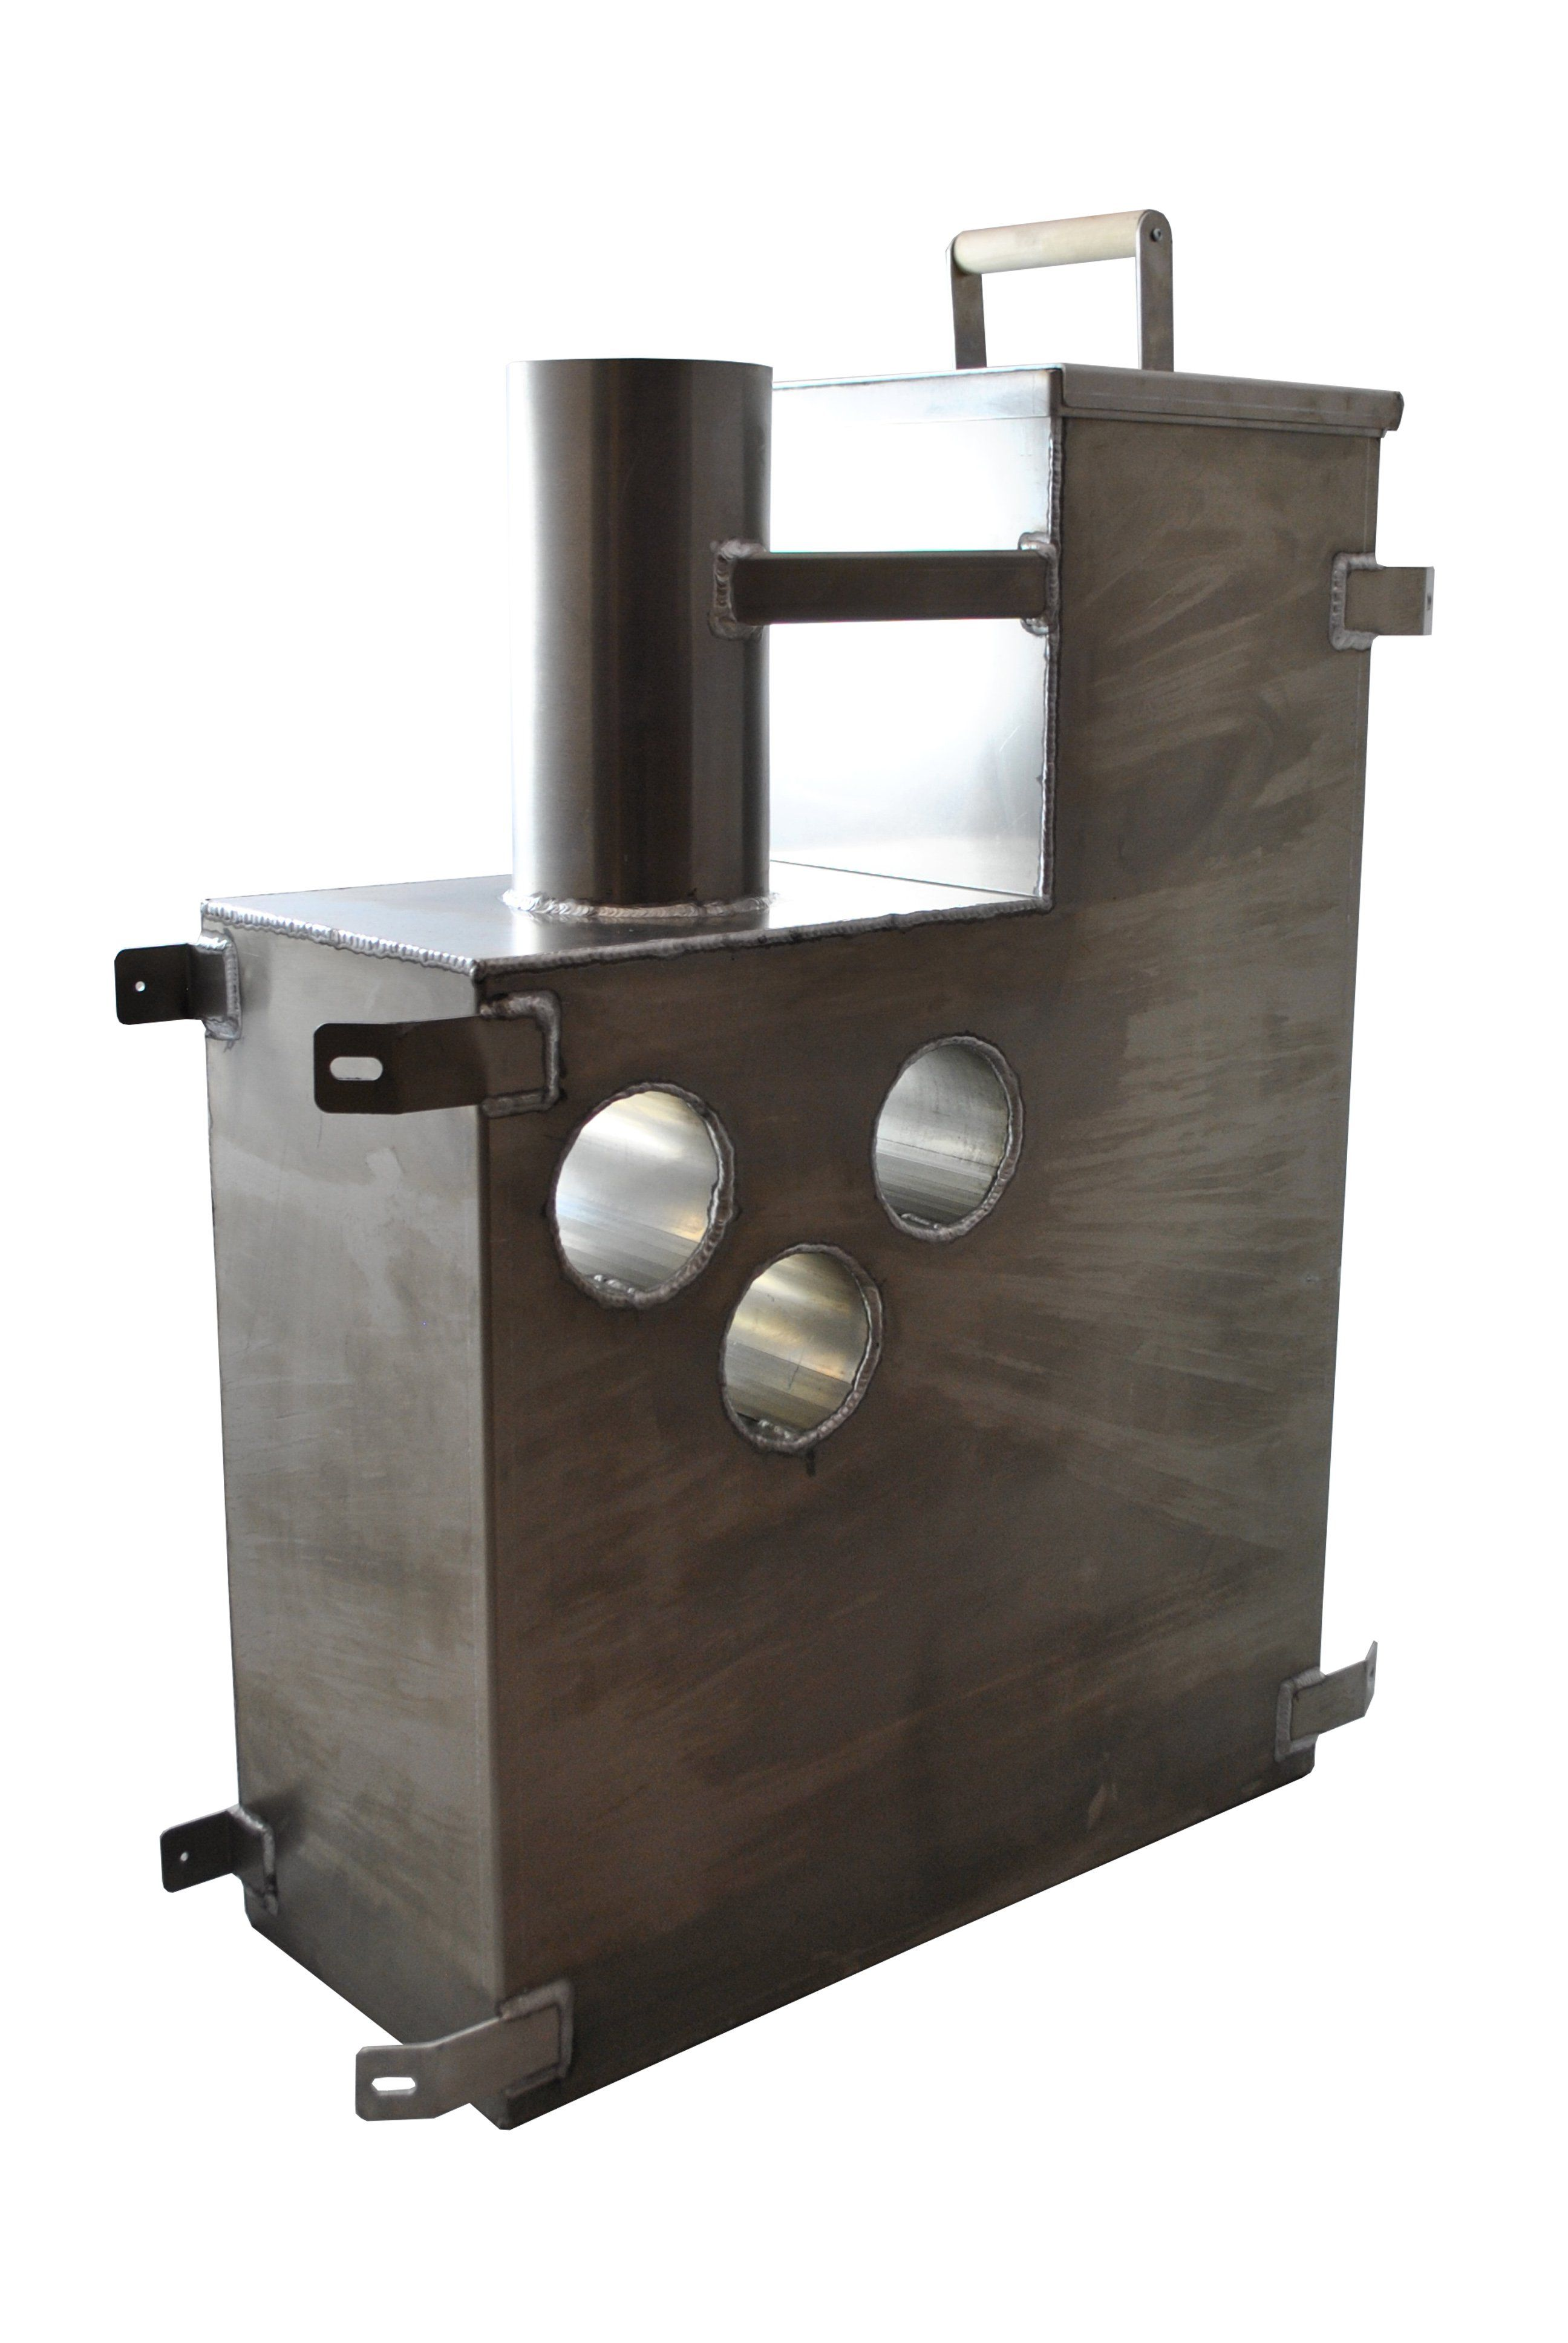 Aluminum Wood Fired Pool Heaters With Images Diy Hot Tub Cabin Hot Tub Hot Tub